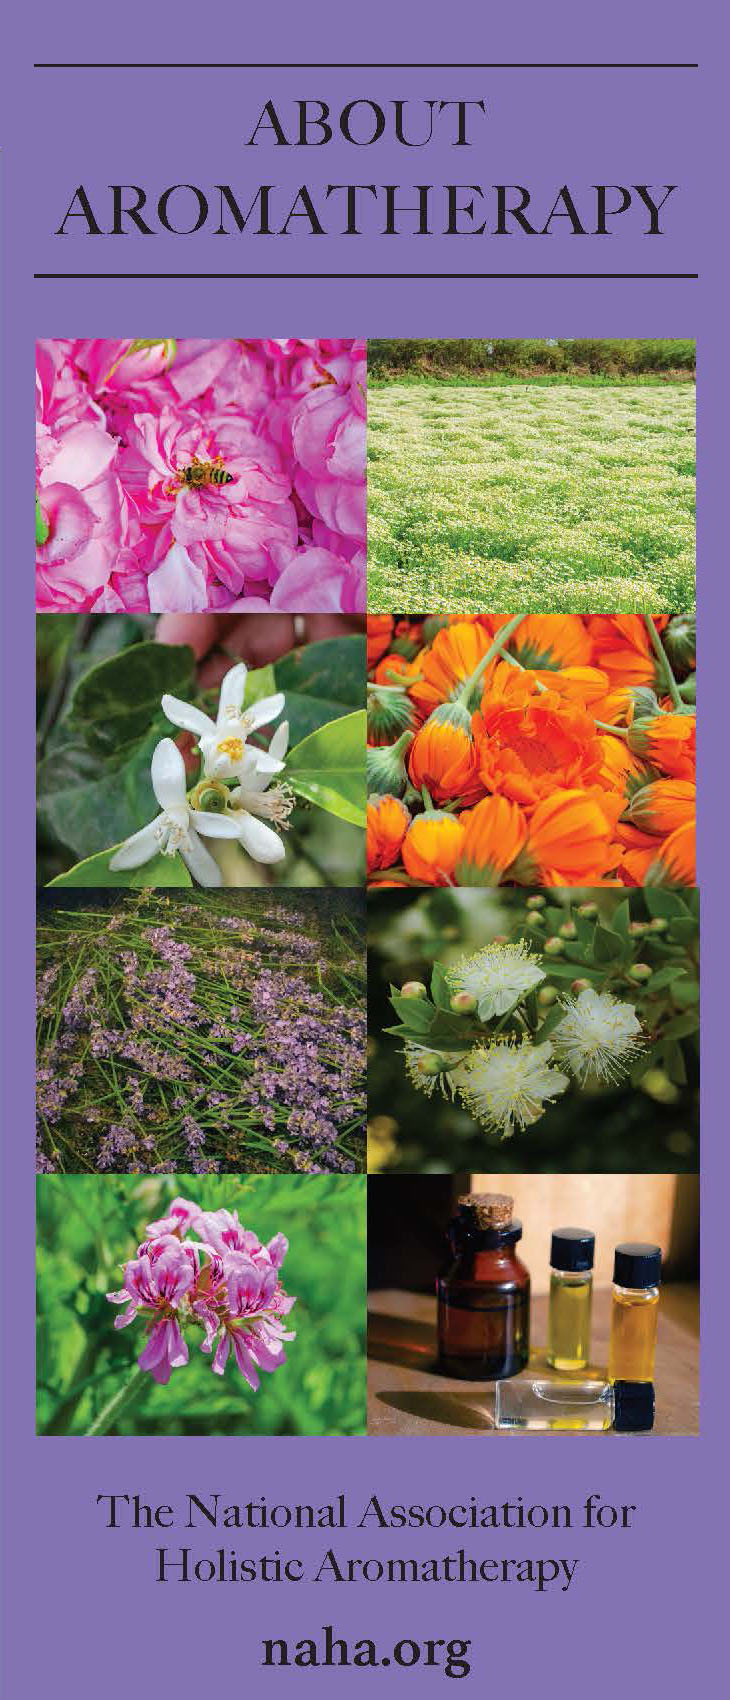 About Aromatherapy Brochure- PDF DOWNLOAD ONLY